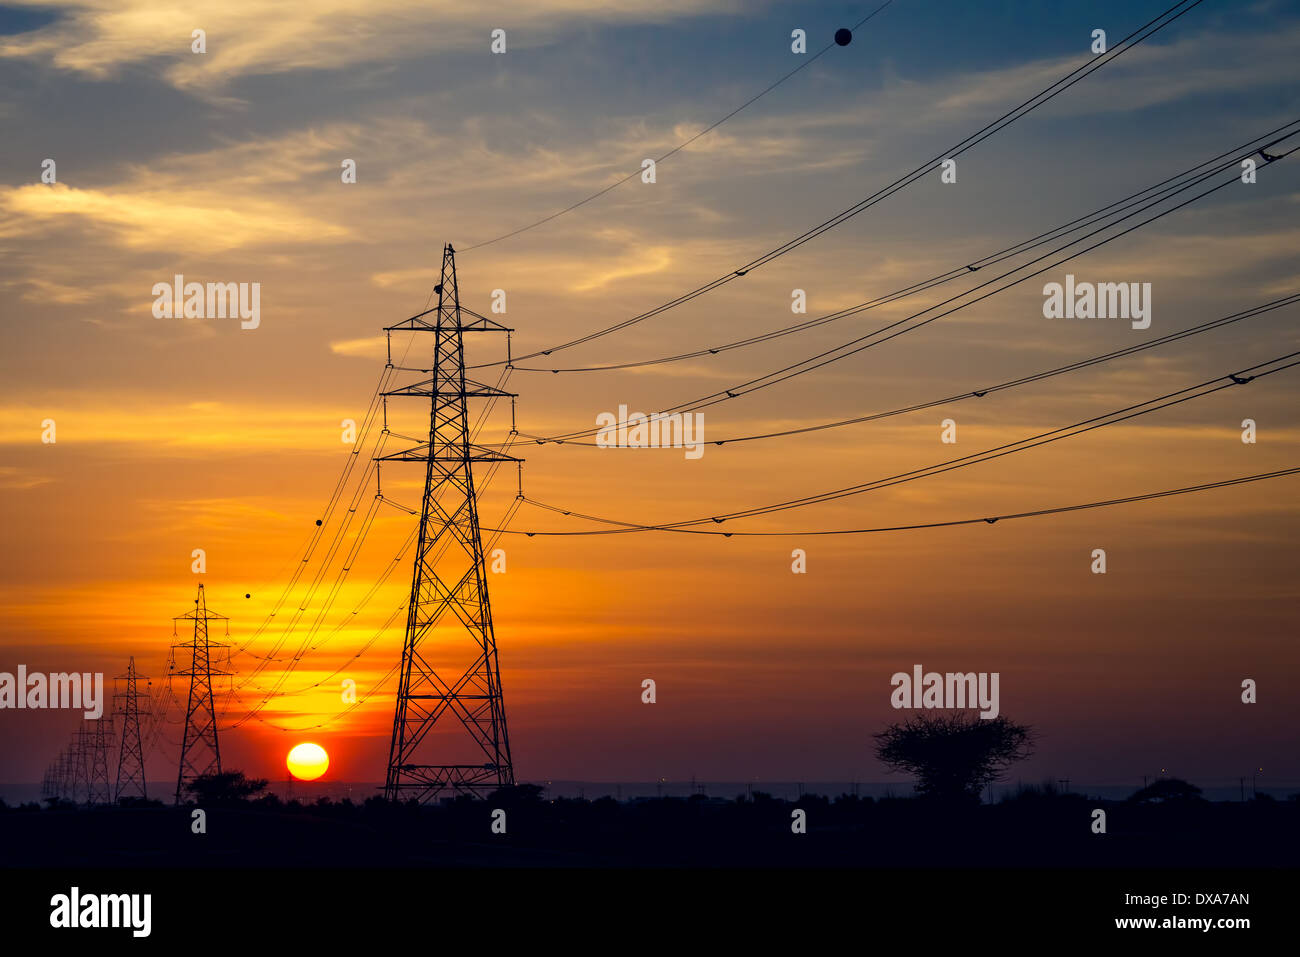 Transmission power line in sunset, concept for green eco energy - Stock Image